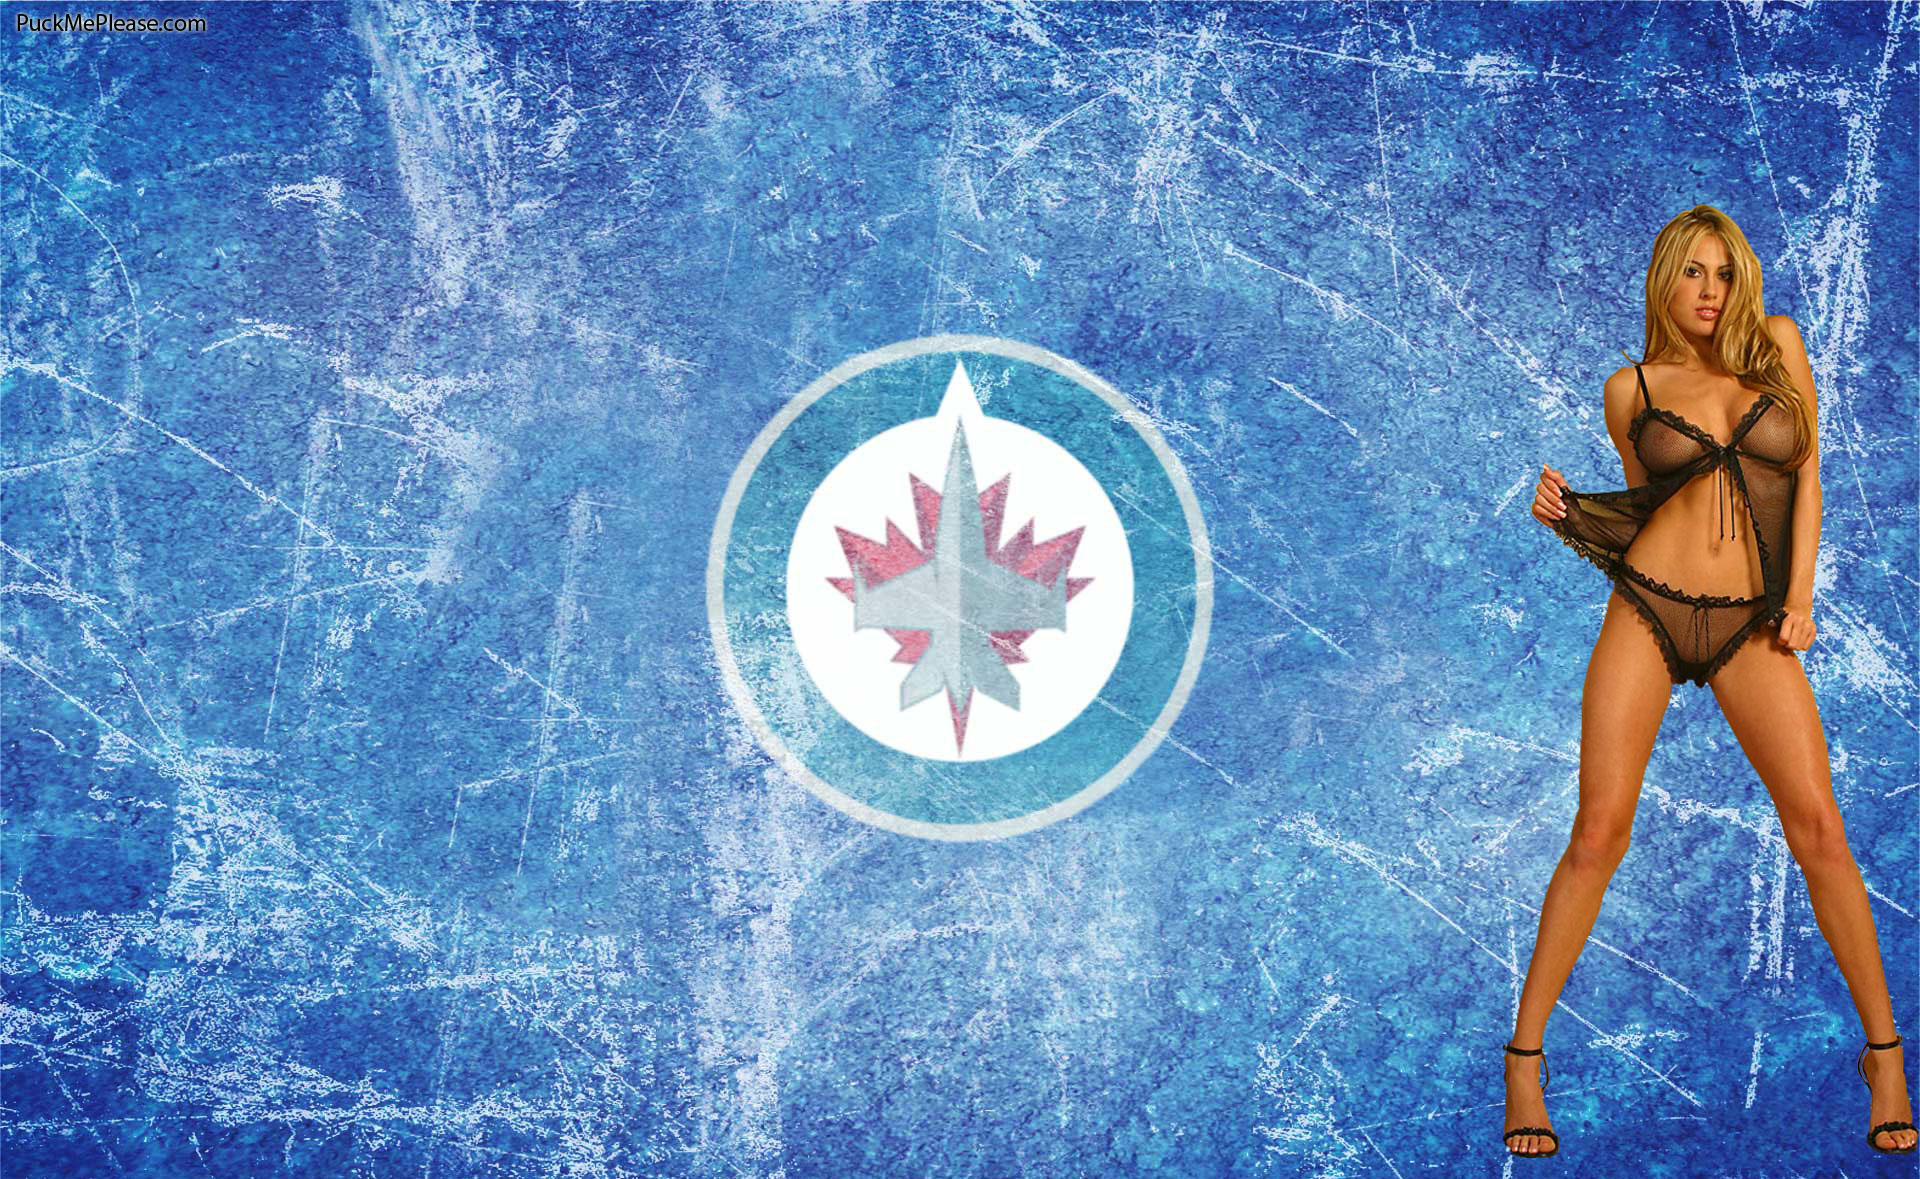 Winnipeg Jets Wallpaper hockey babe 1920x1179